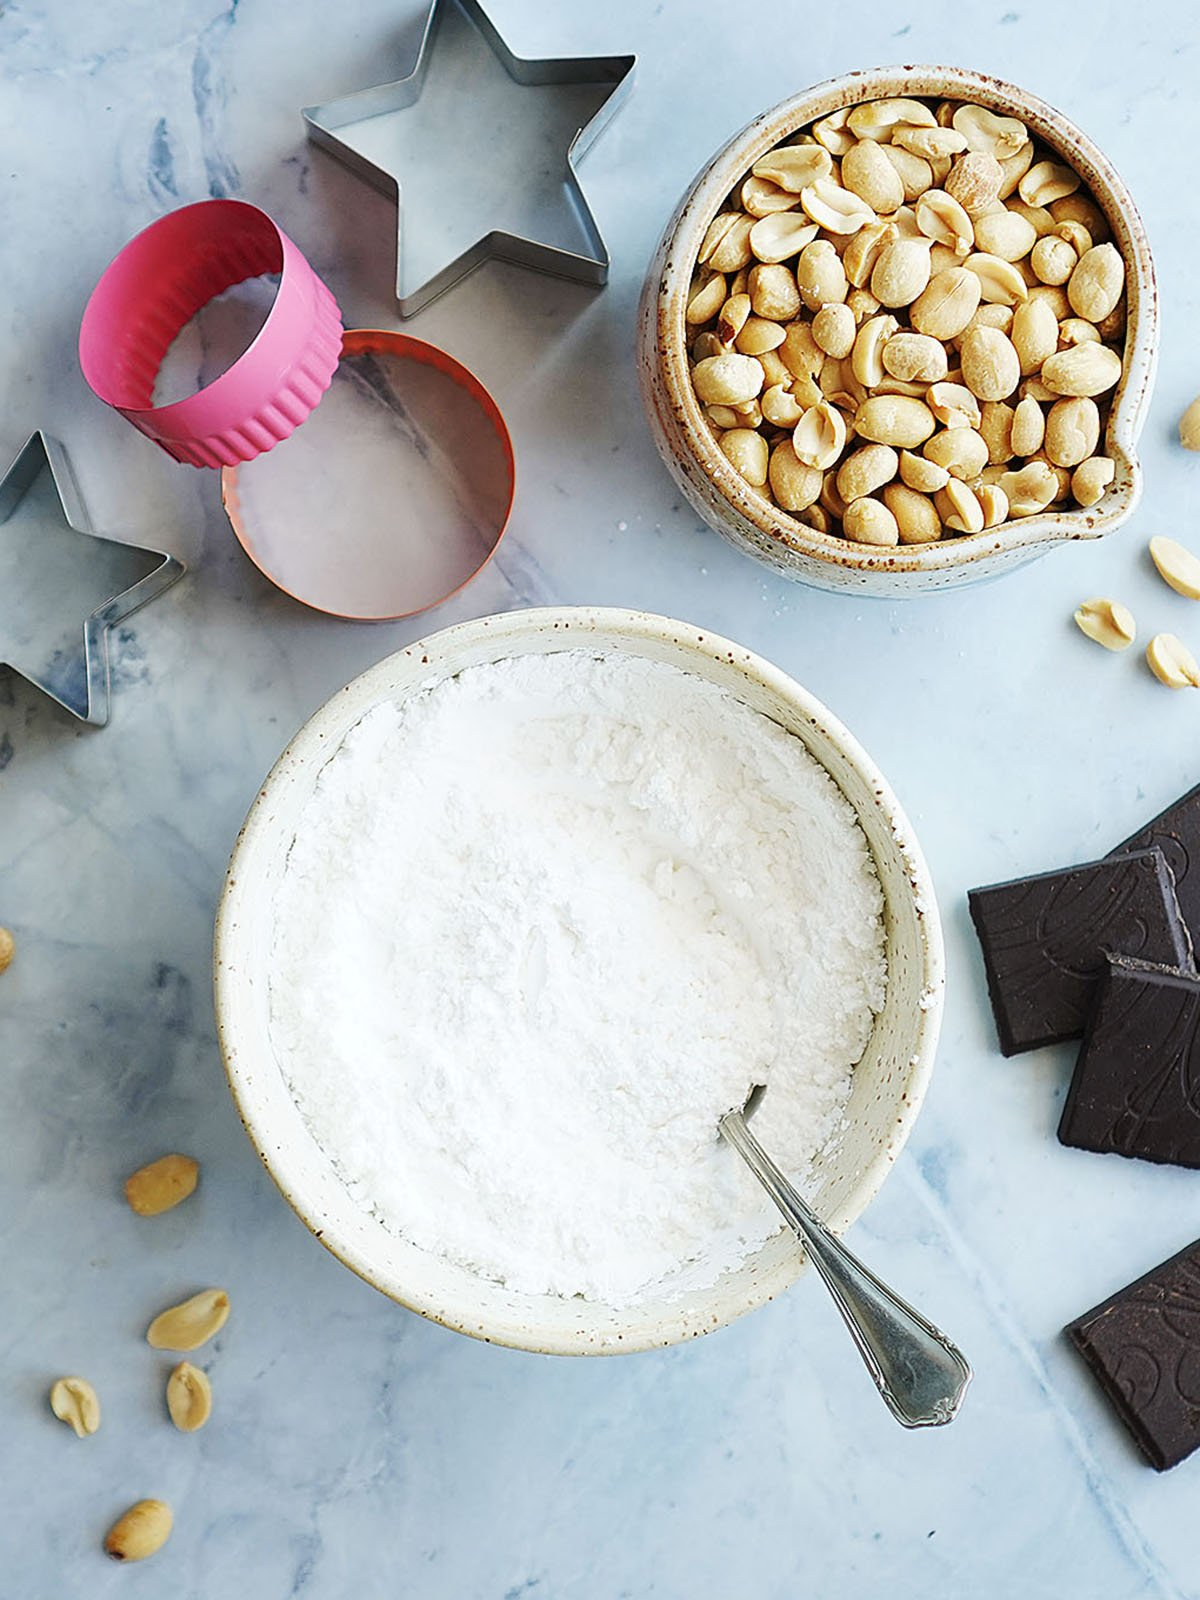 Ingredients on a blue background: peanuts (no shell) and powdered sugar on ceramic bowls